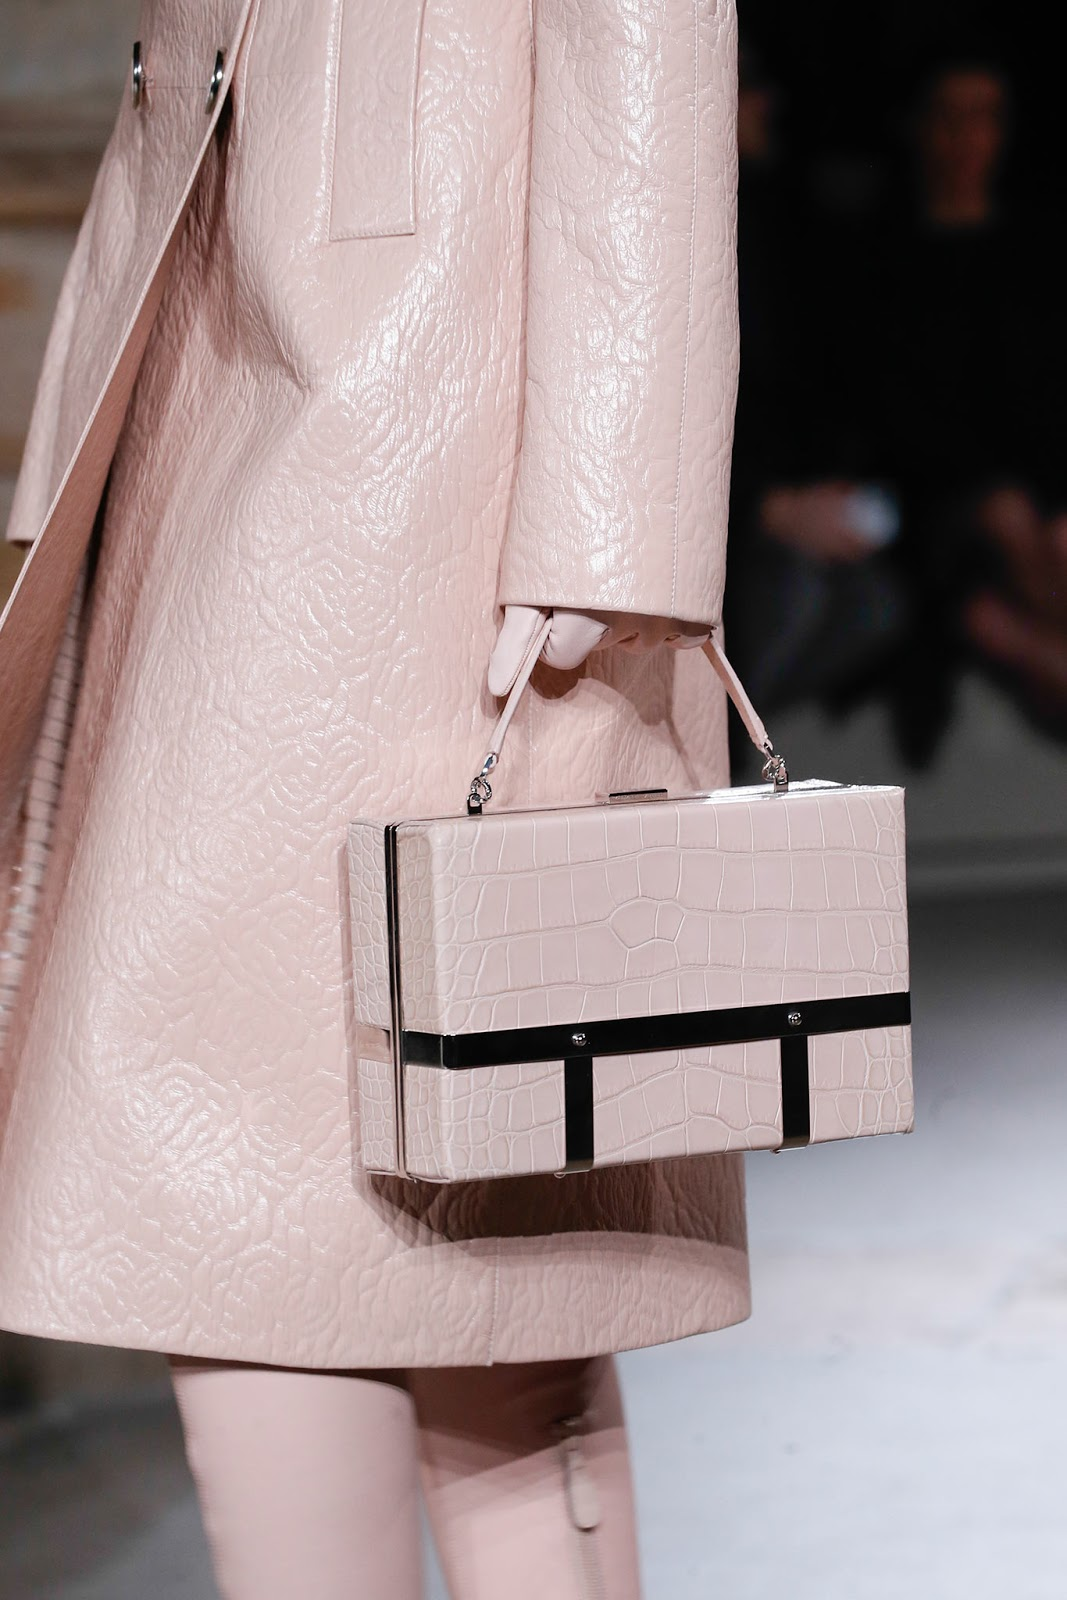 Fall 2015 accessories trend report / best bags / investment bags / crocodile accessories trend at Alexander McQueen Fall/Winter 2015 via fashionedbylove.co.uk, british fashion blog